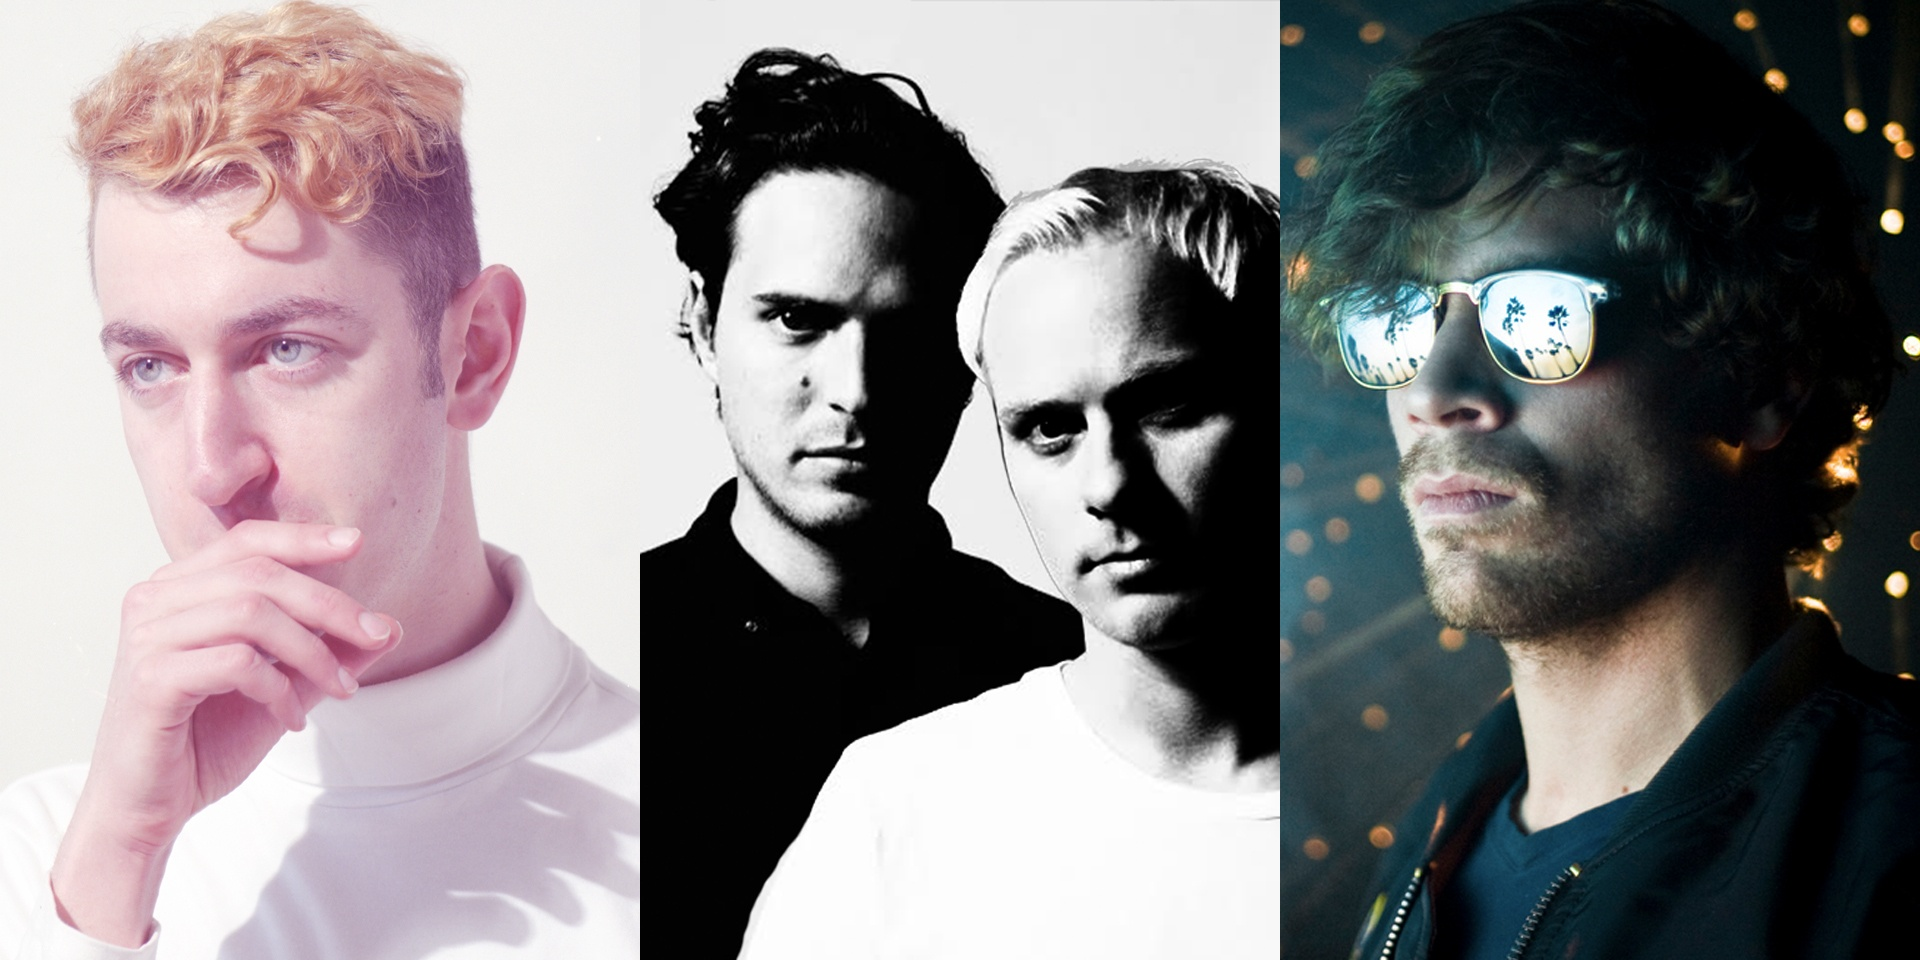 Chrome Sparks, Moon Boots and Classixx all performing in Singapore under Moonbeats